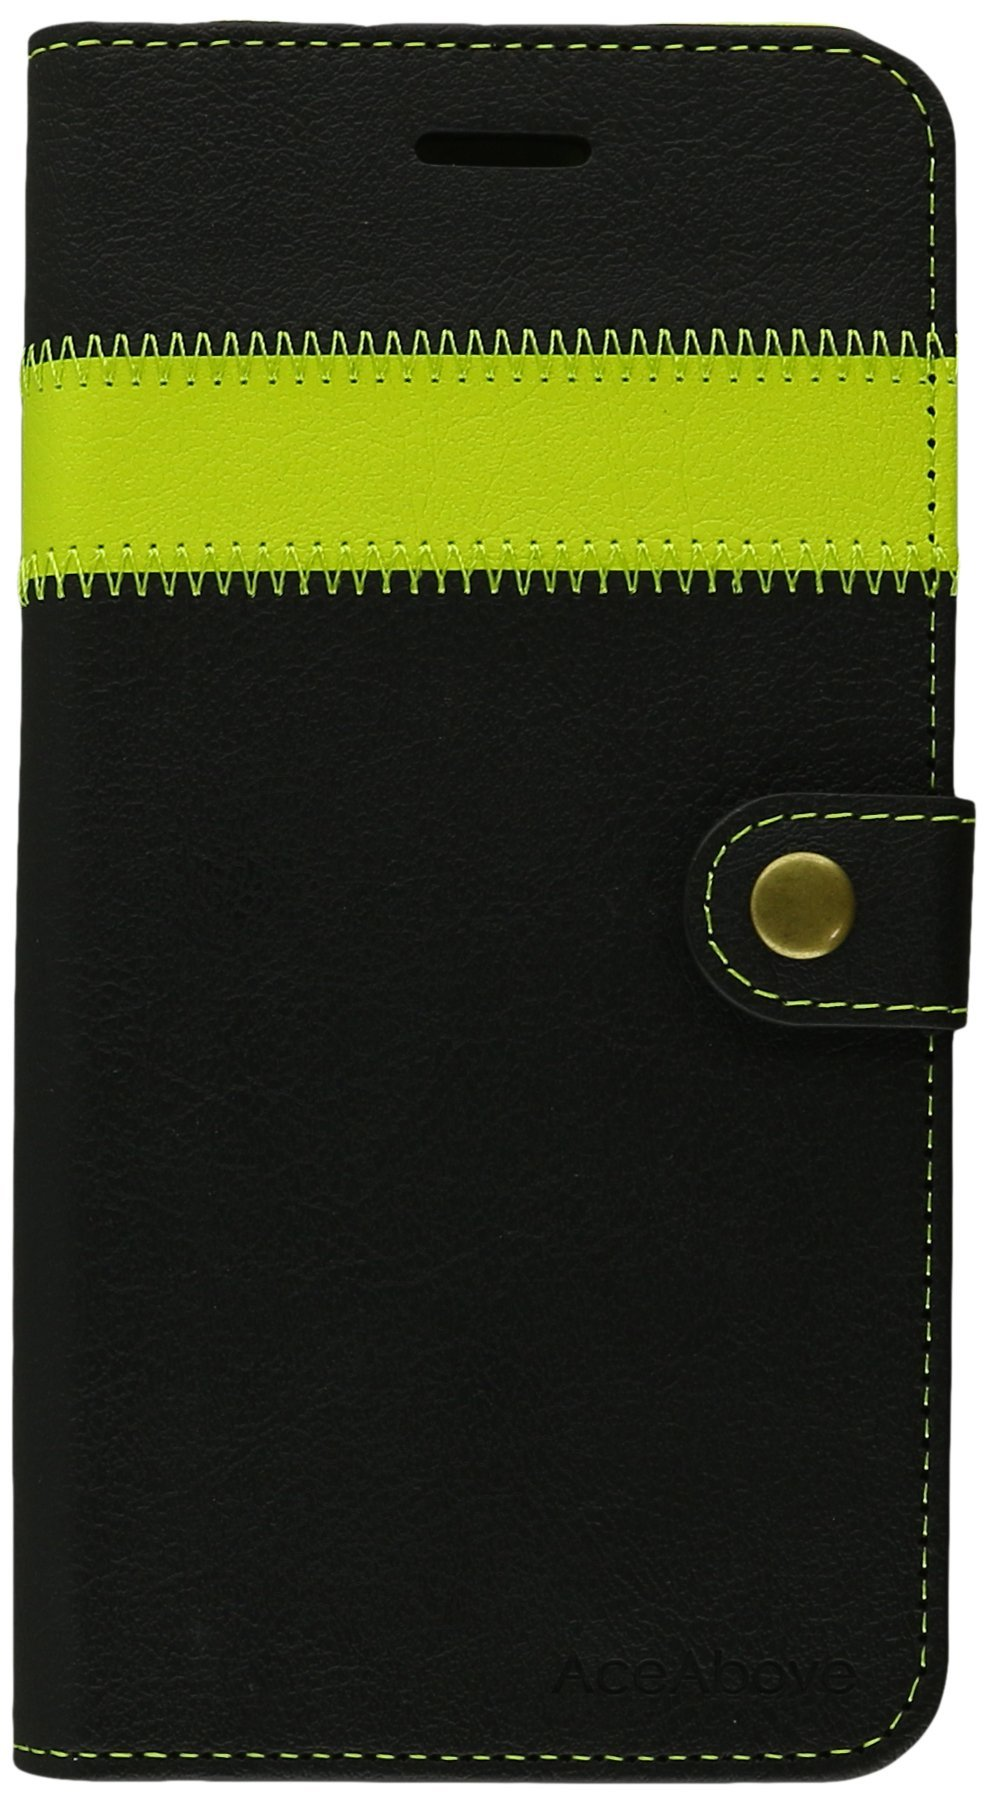 iPhone 6S Plus Case, AceAbove iPhone 6S wallet case [Black/Lime] - Premium PU Leather Wallet Cover with [Card Slots] and [KickStand] Function for Apple iPhone 6S Plus/iPhone 6 Plus